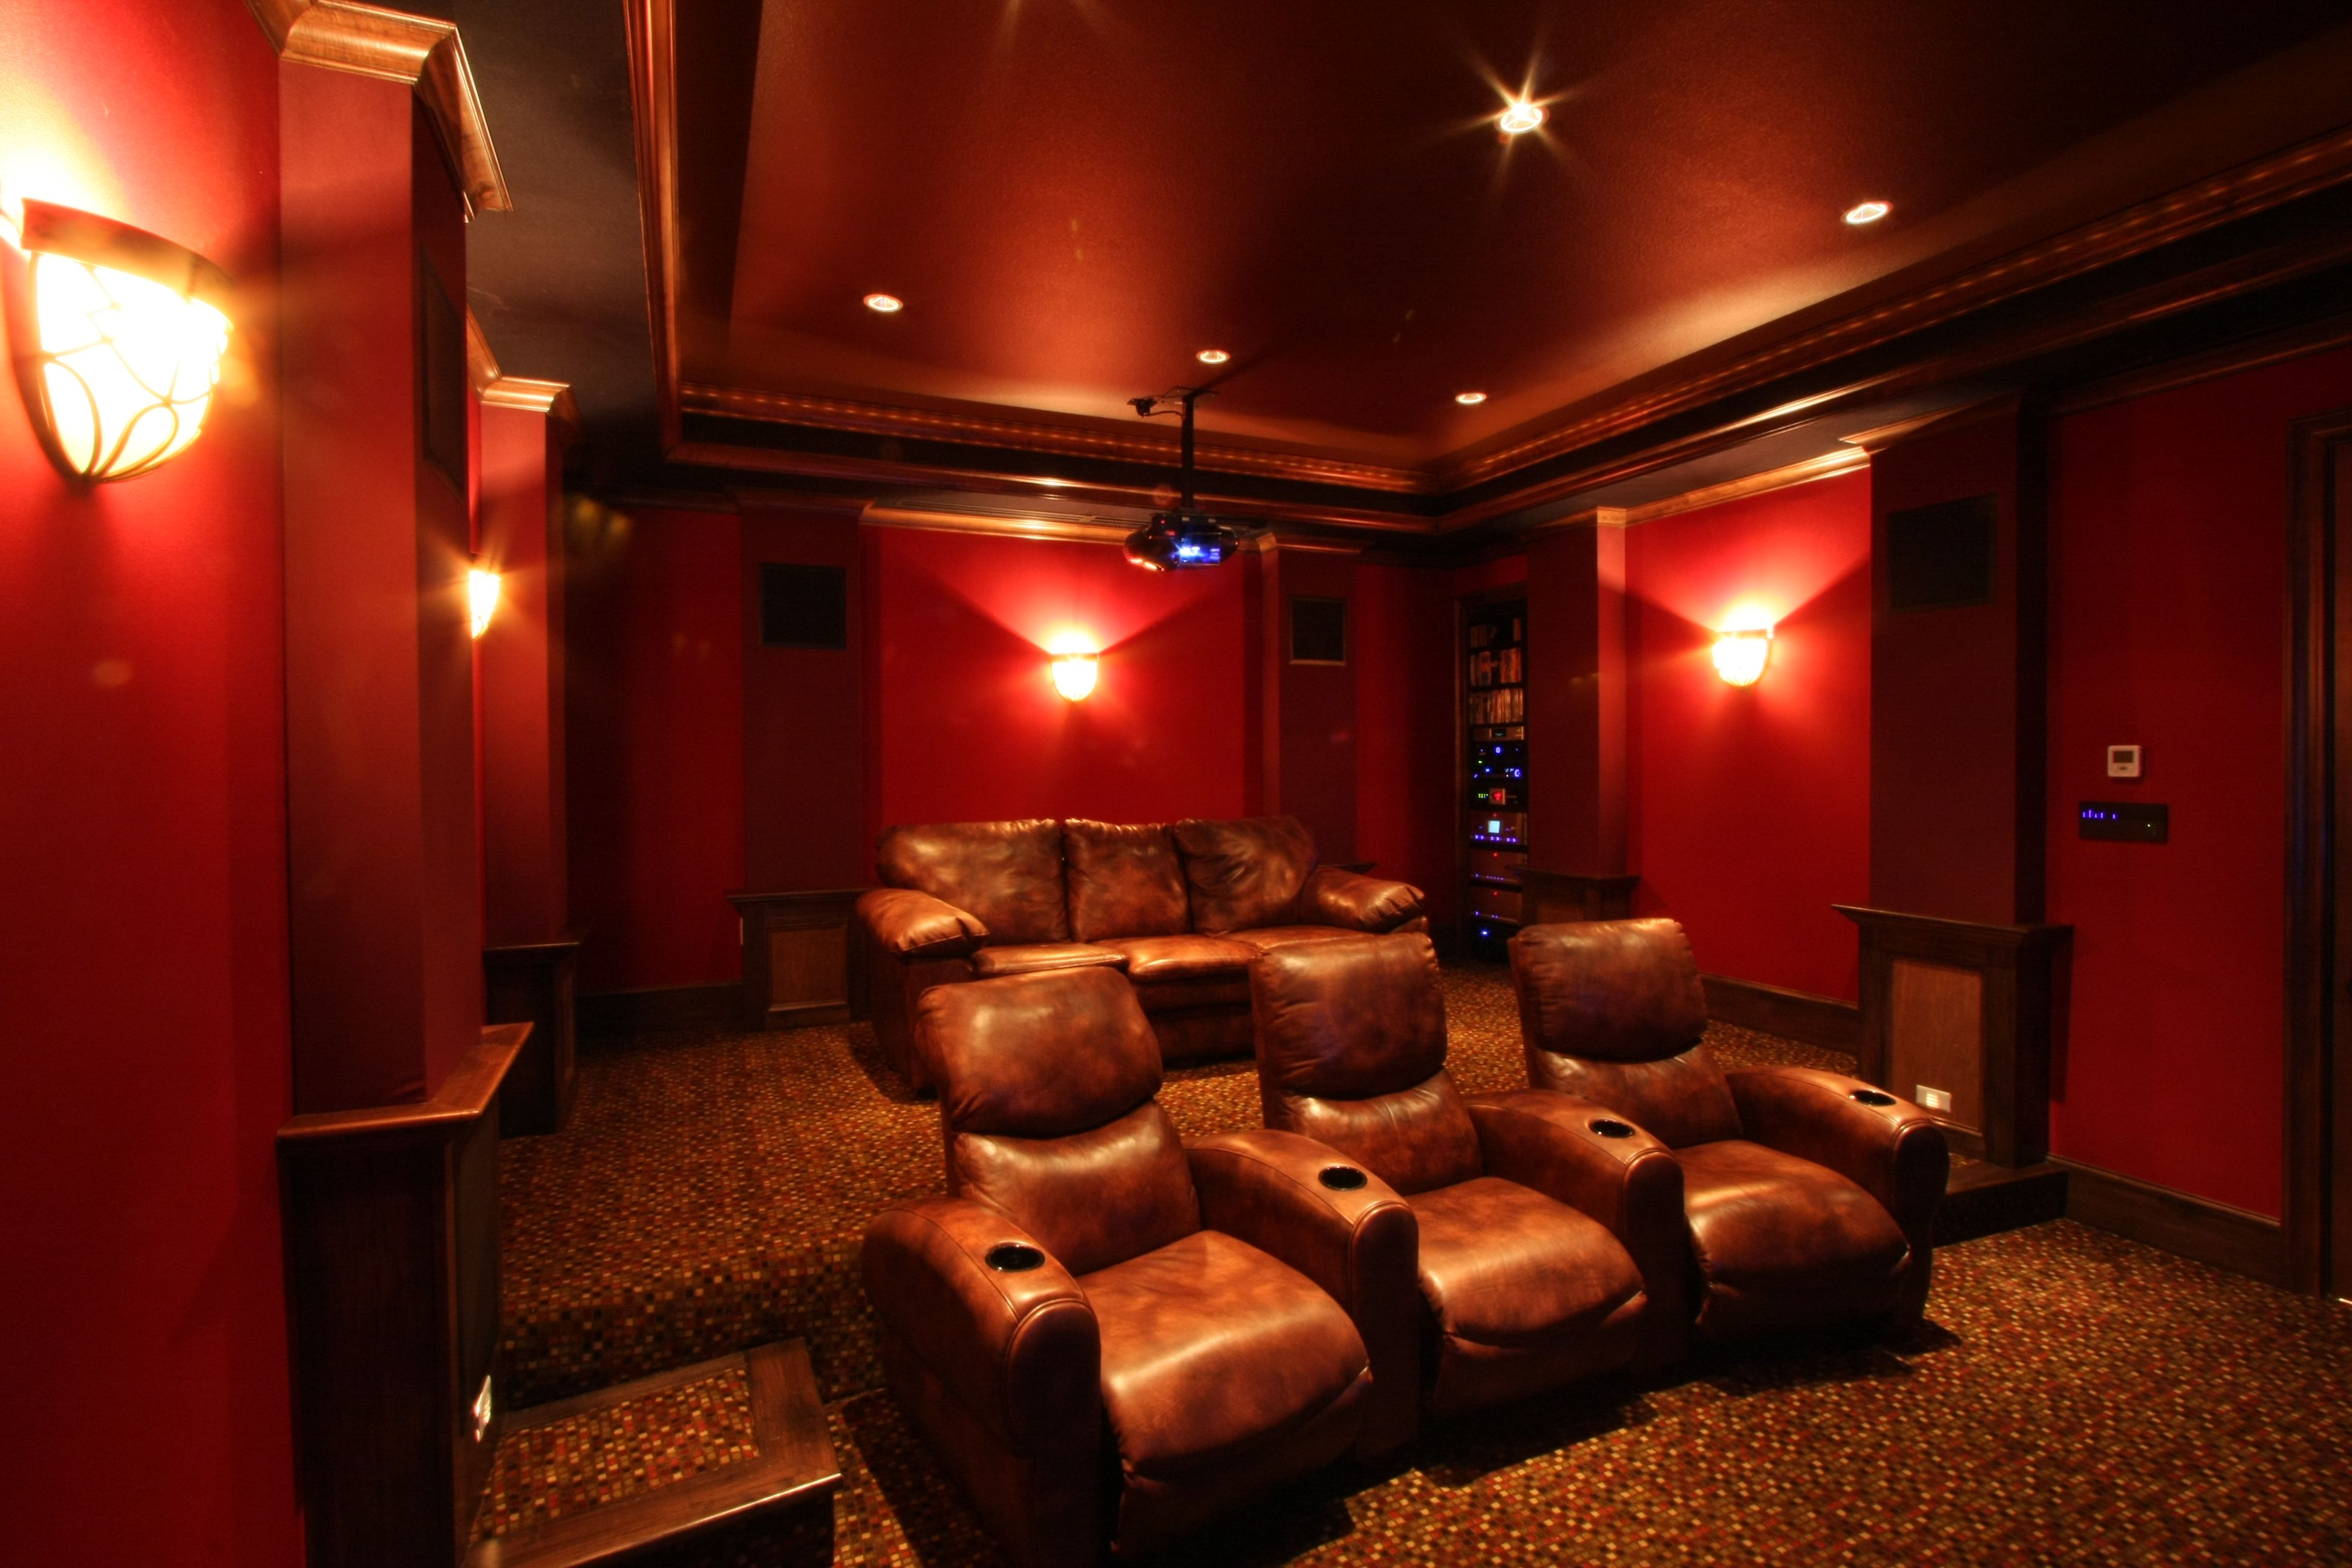 New Media Room Mahogany Millwork Columns And Crown Moldings Fantastic Audio Video Equipment And The Best In Acoustic Technolog Media Room Audio Room Millwork